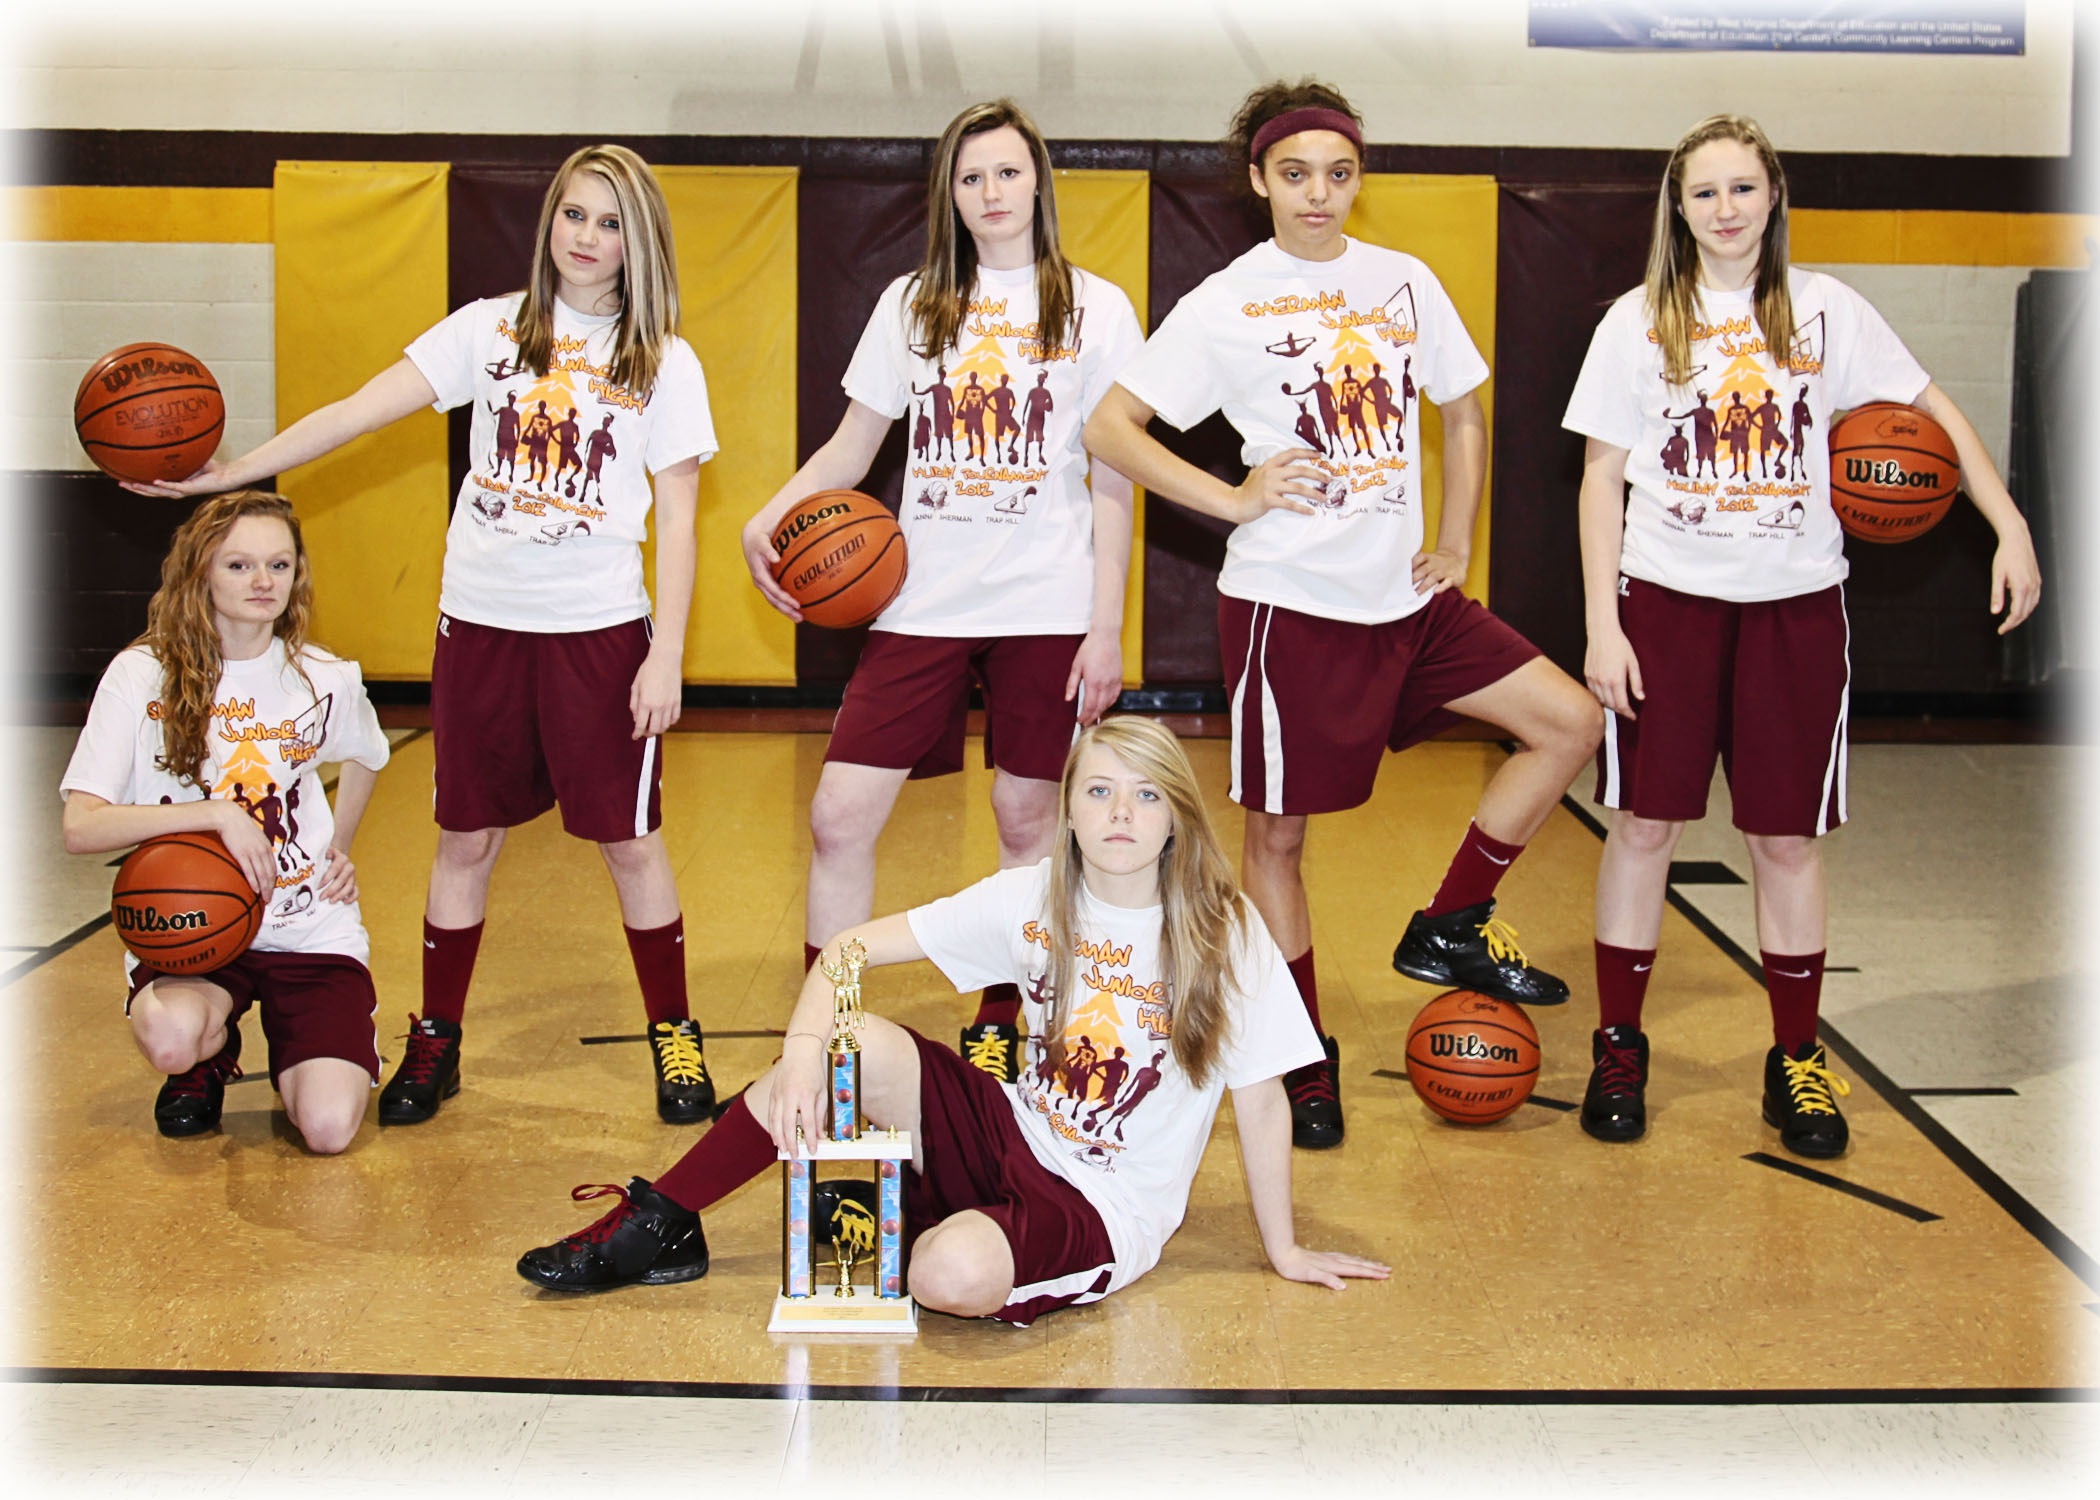 sherman junior high girls basketball t shirt photo